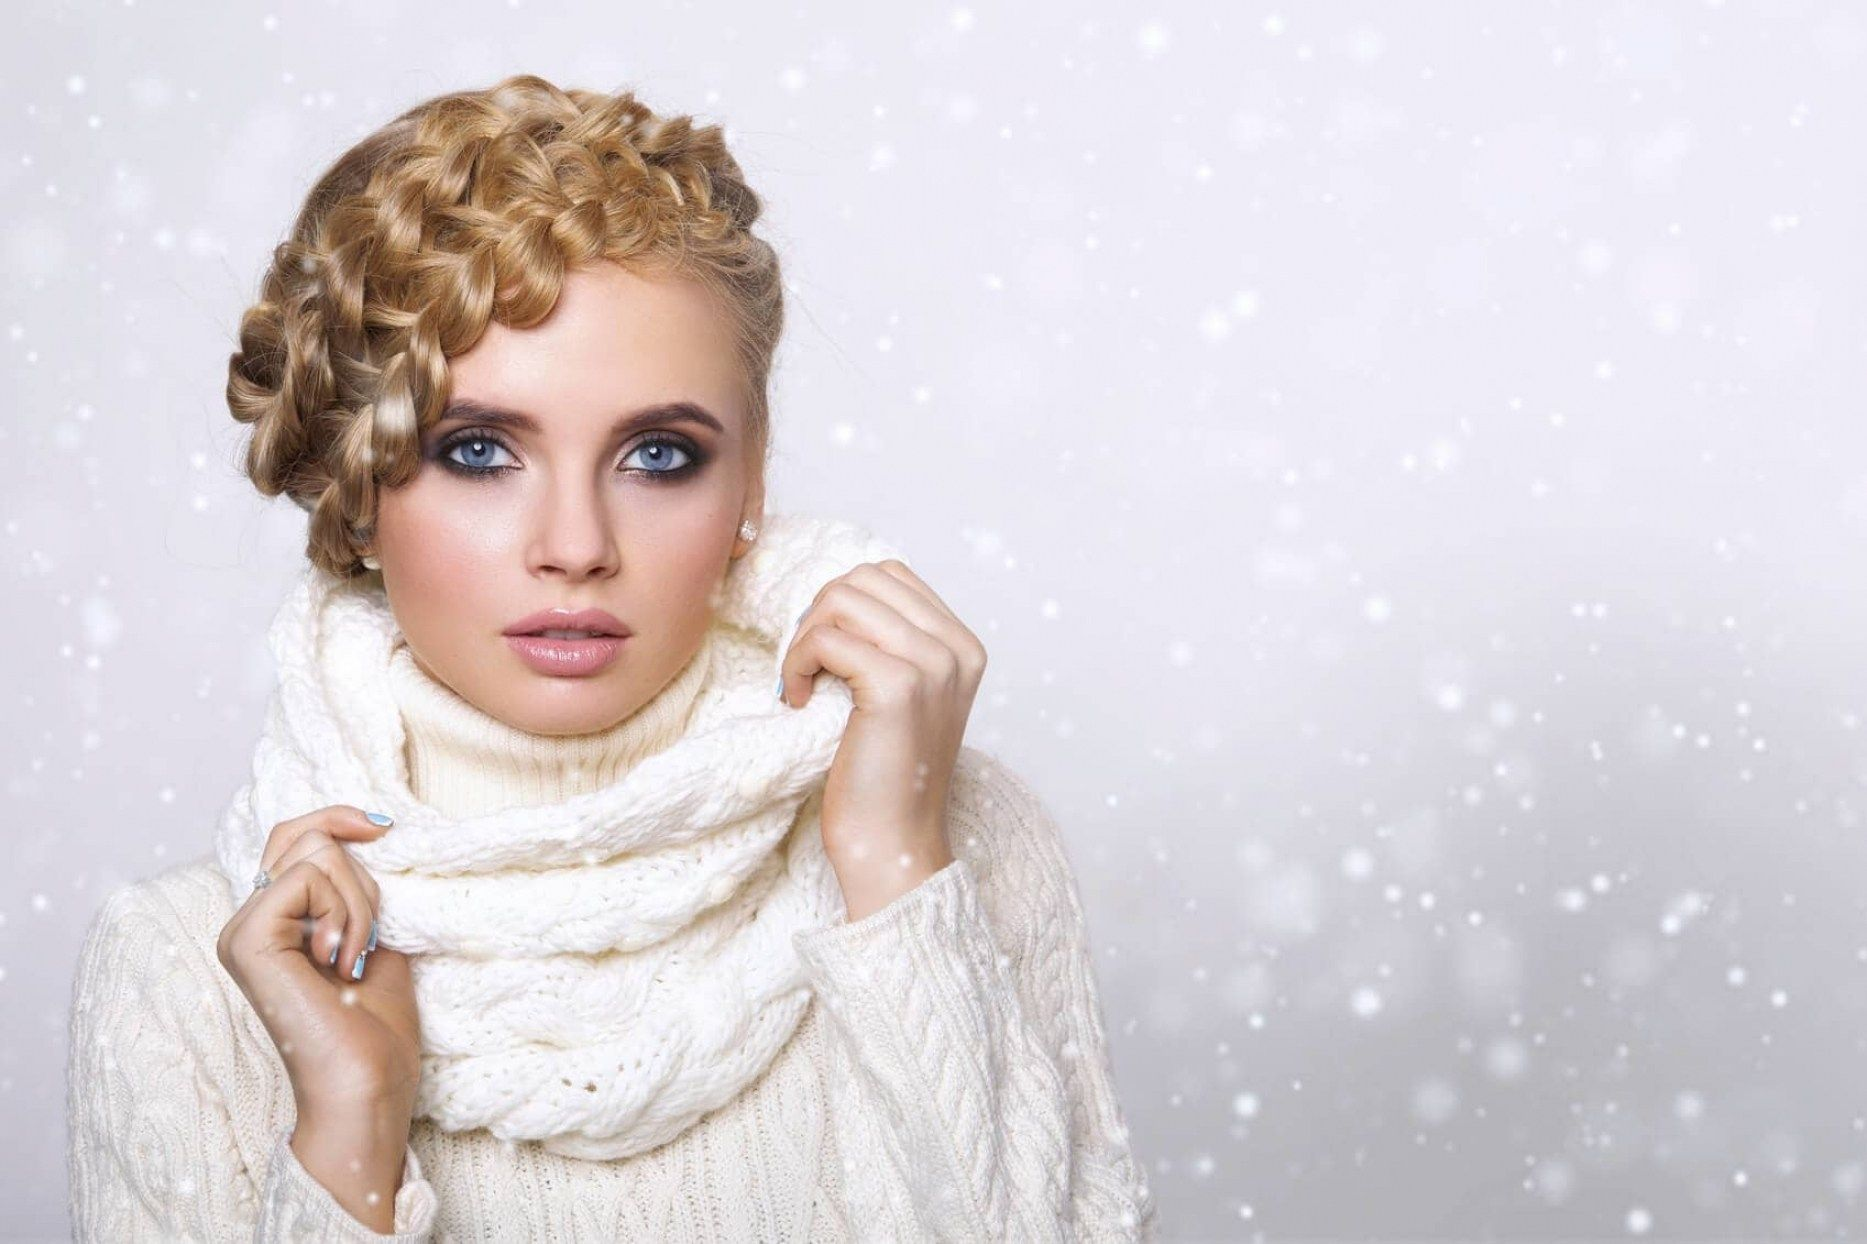 7 stunning winter wedding hairstyles in winter wedding hairstyles ...